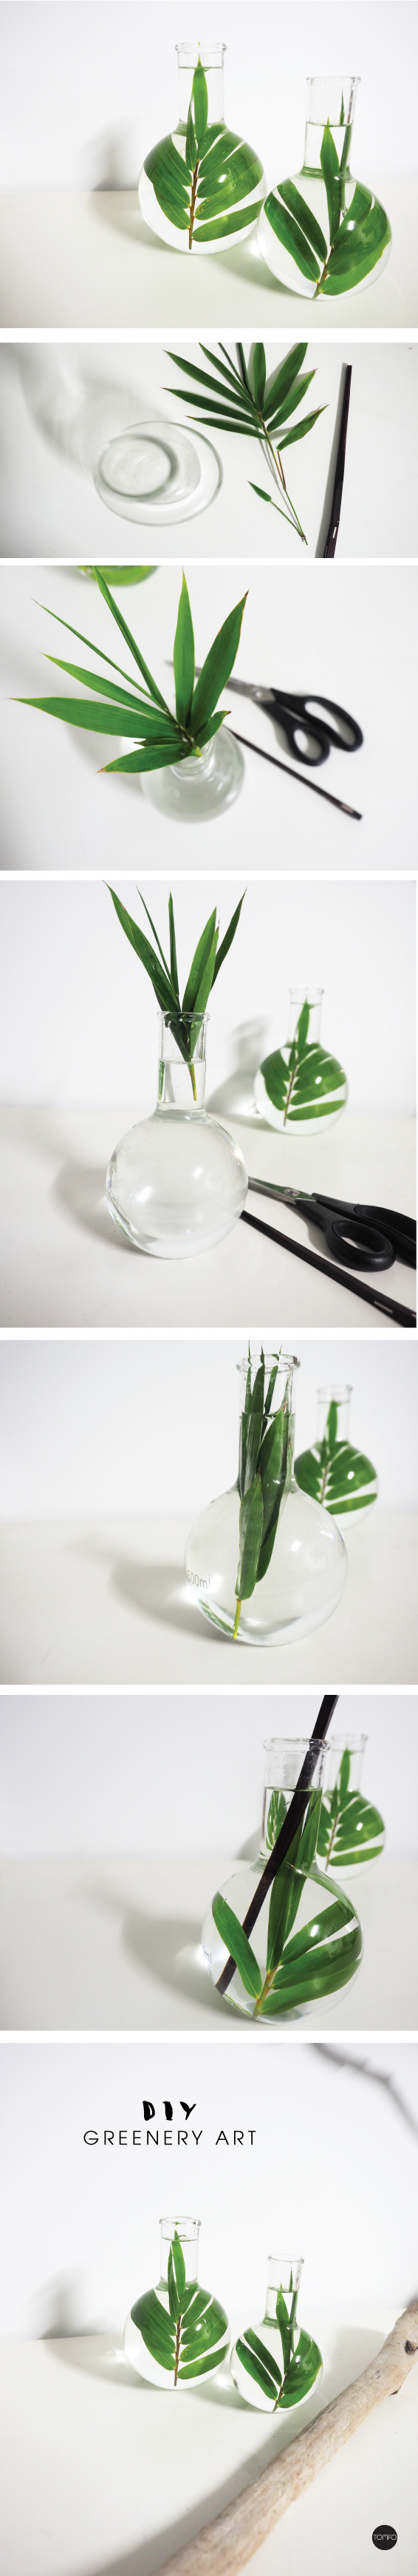 DIY-Greenery-art-TOMFO